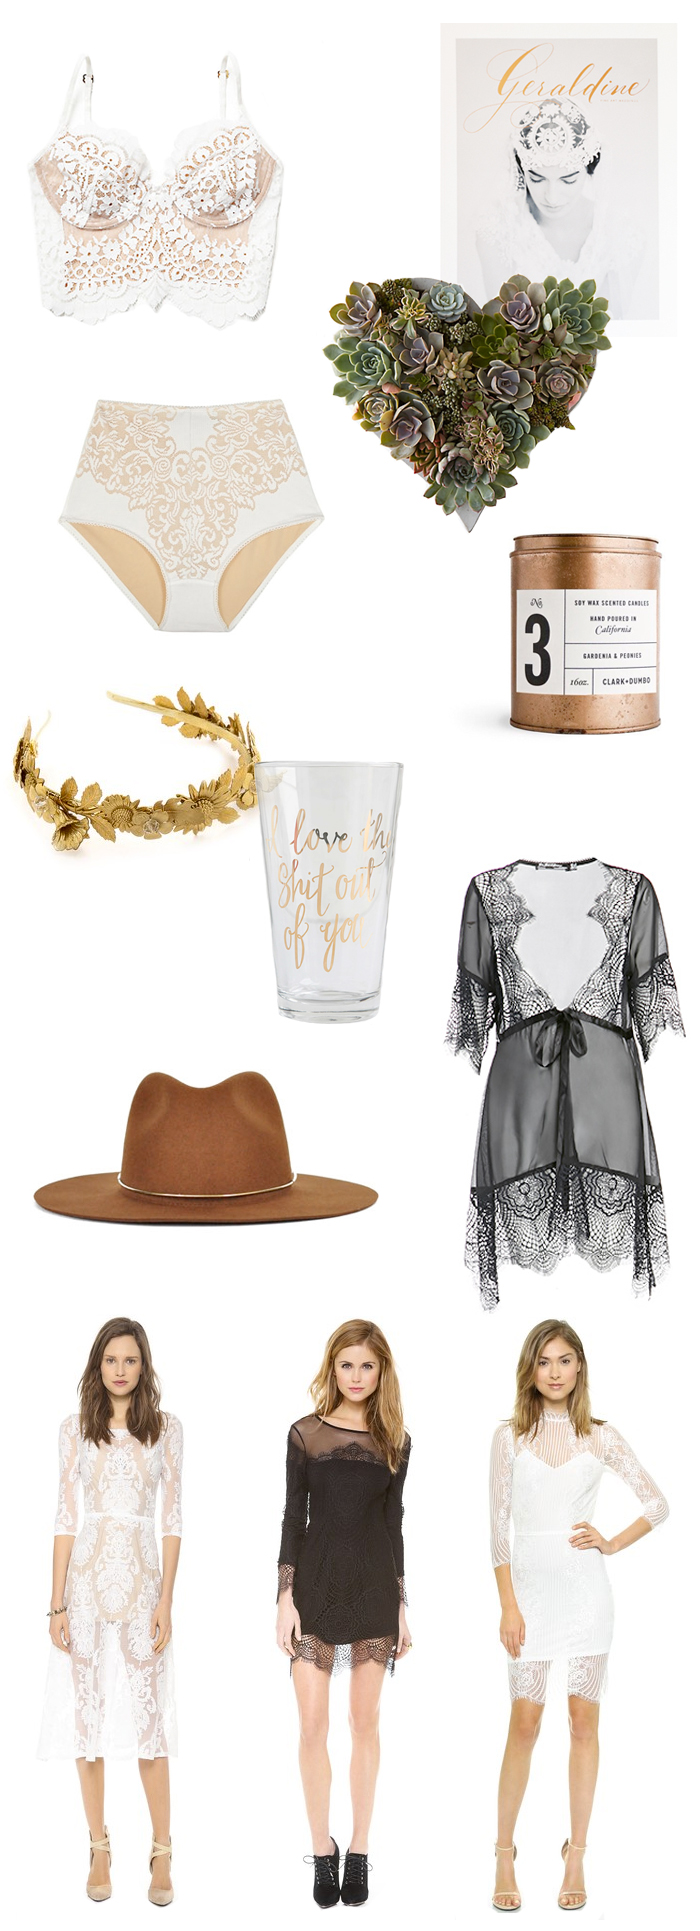 valentines-day-wishlist-bona-drag-shopbop-free-people-for-love-and-lemons-terrain-anthropologie-geraldine.jpg